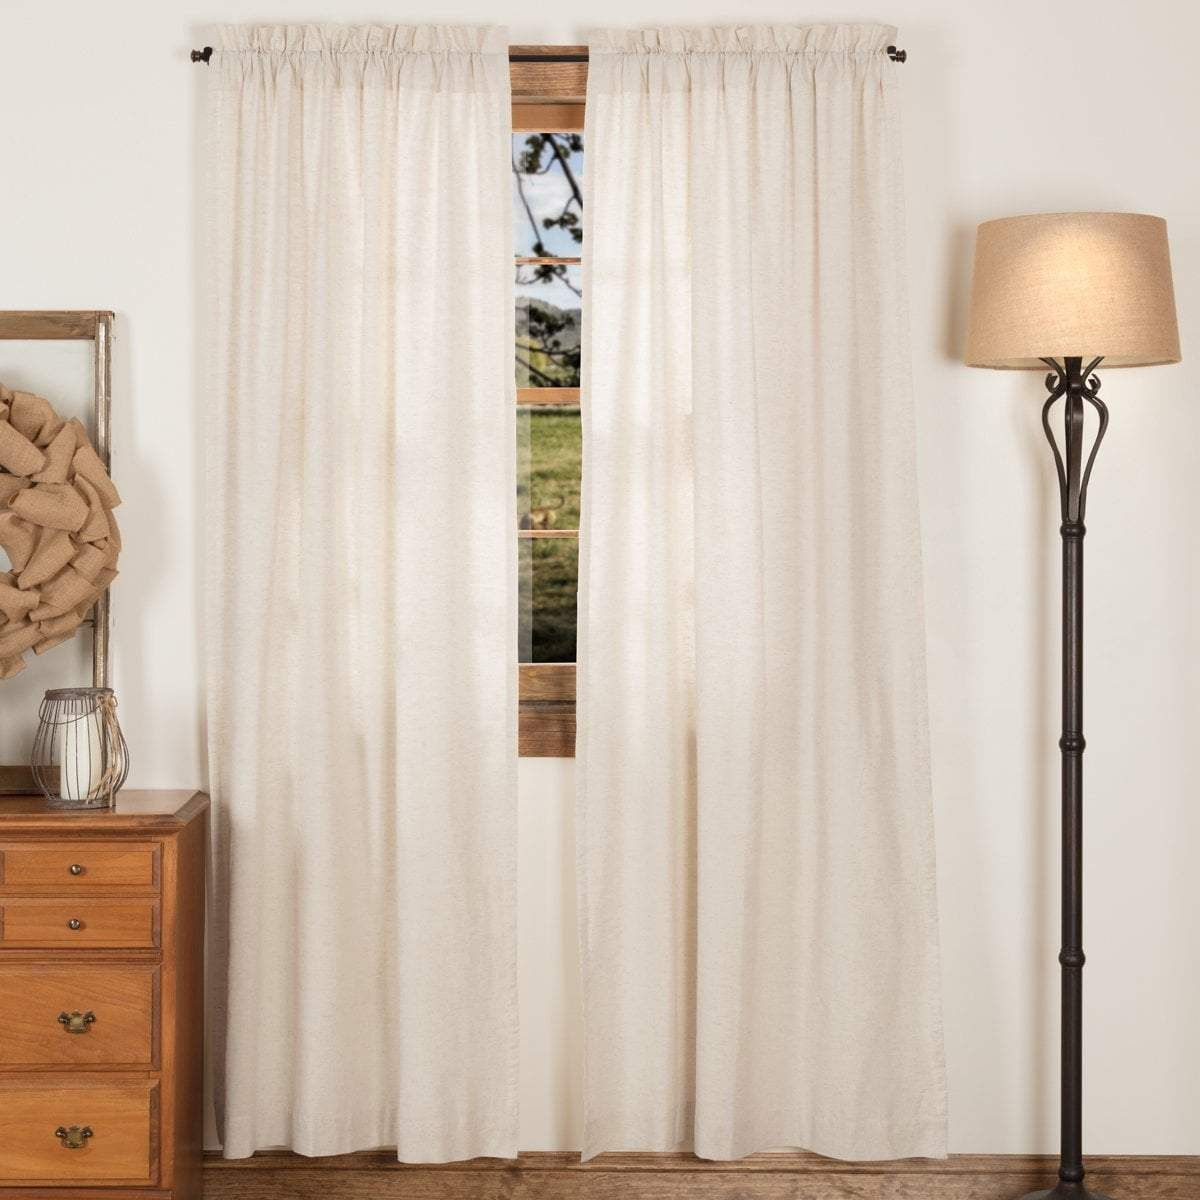 Simple Life Flax Panels | Rod Pocket Curtains, Panel Inside Simple Life Flax Tier Pairs (View 17 of 20)